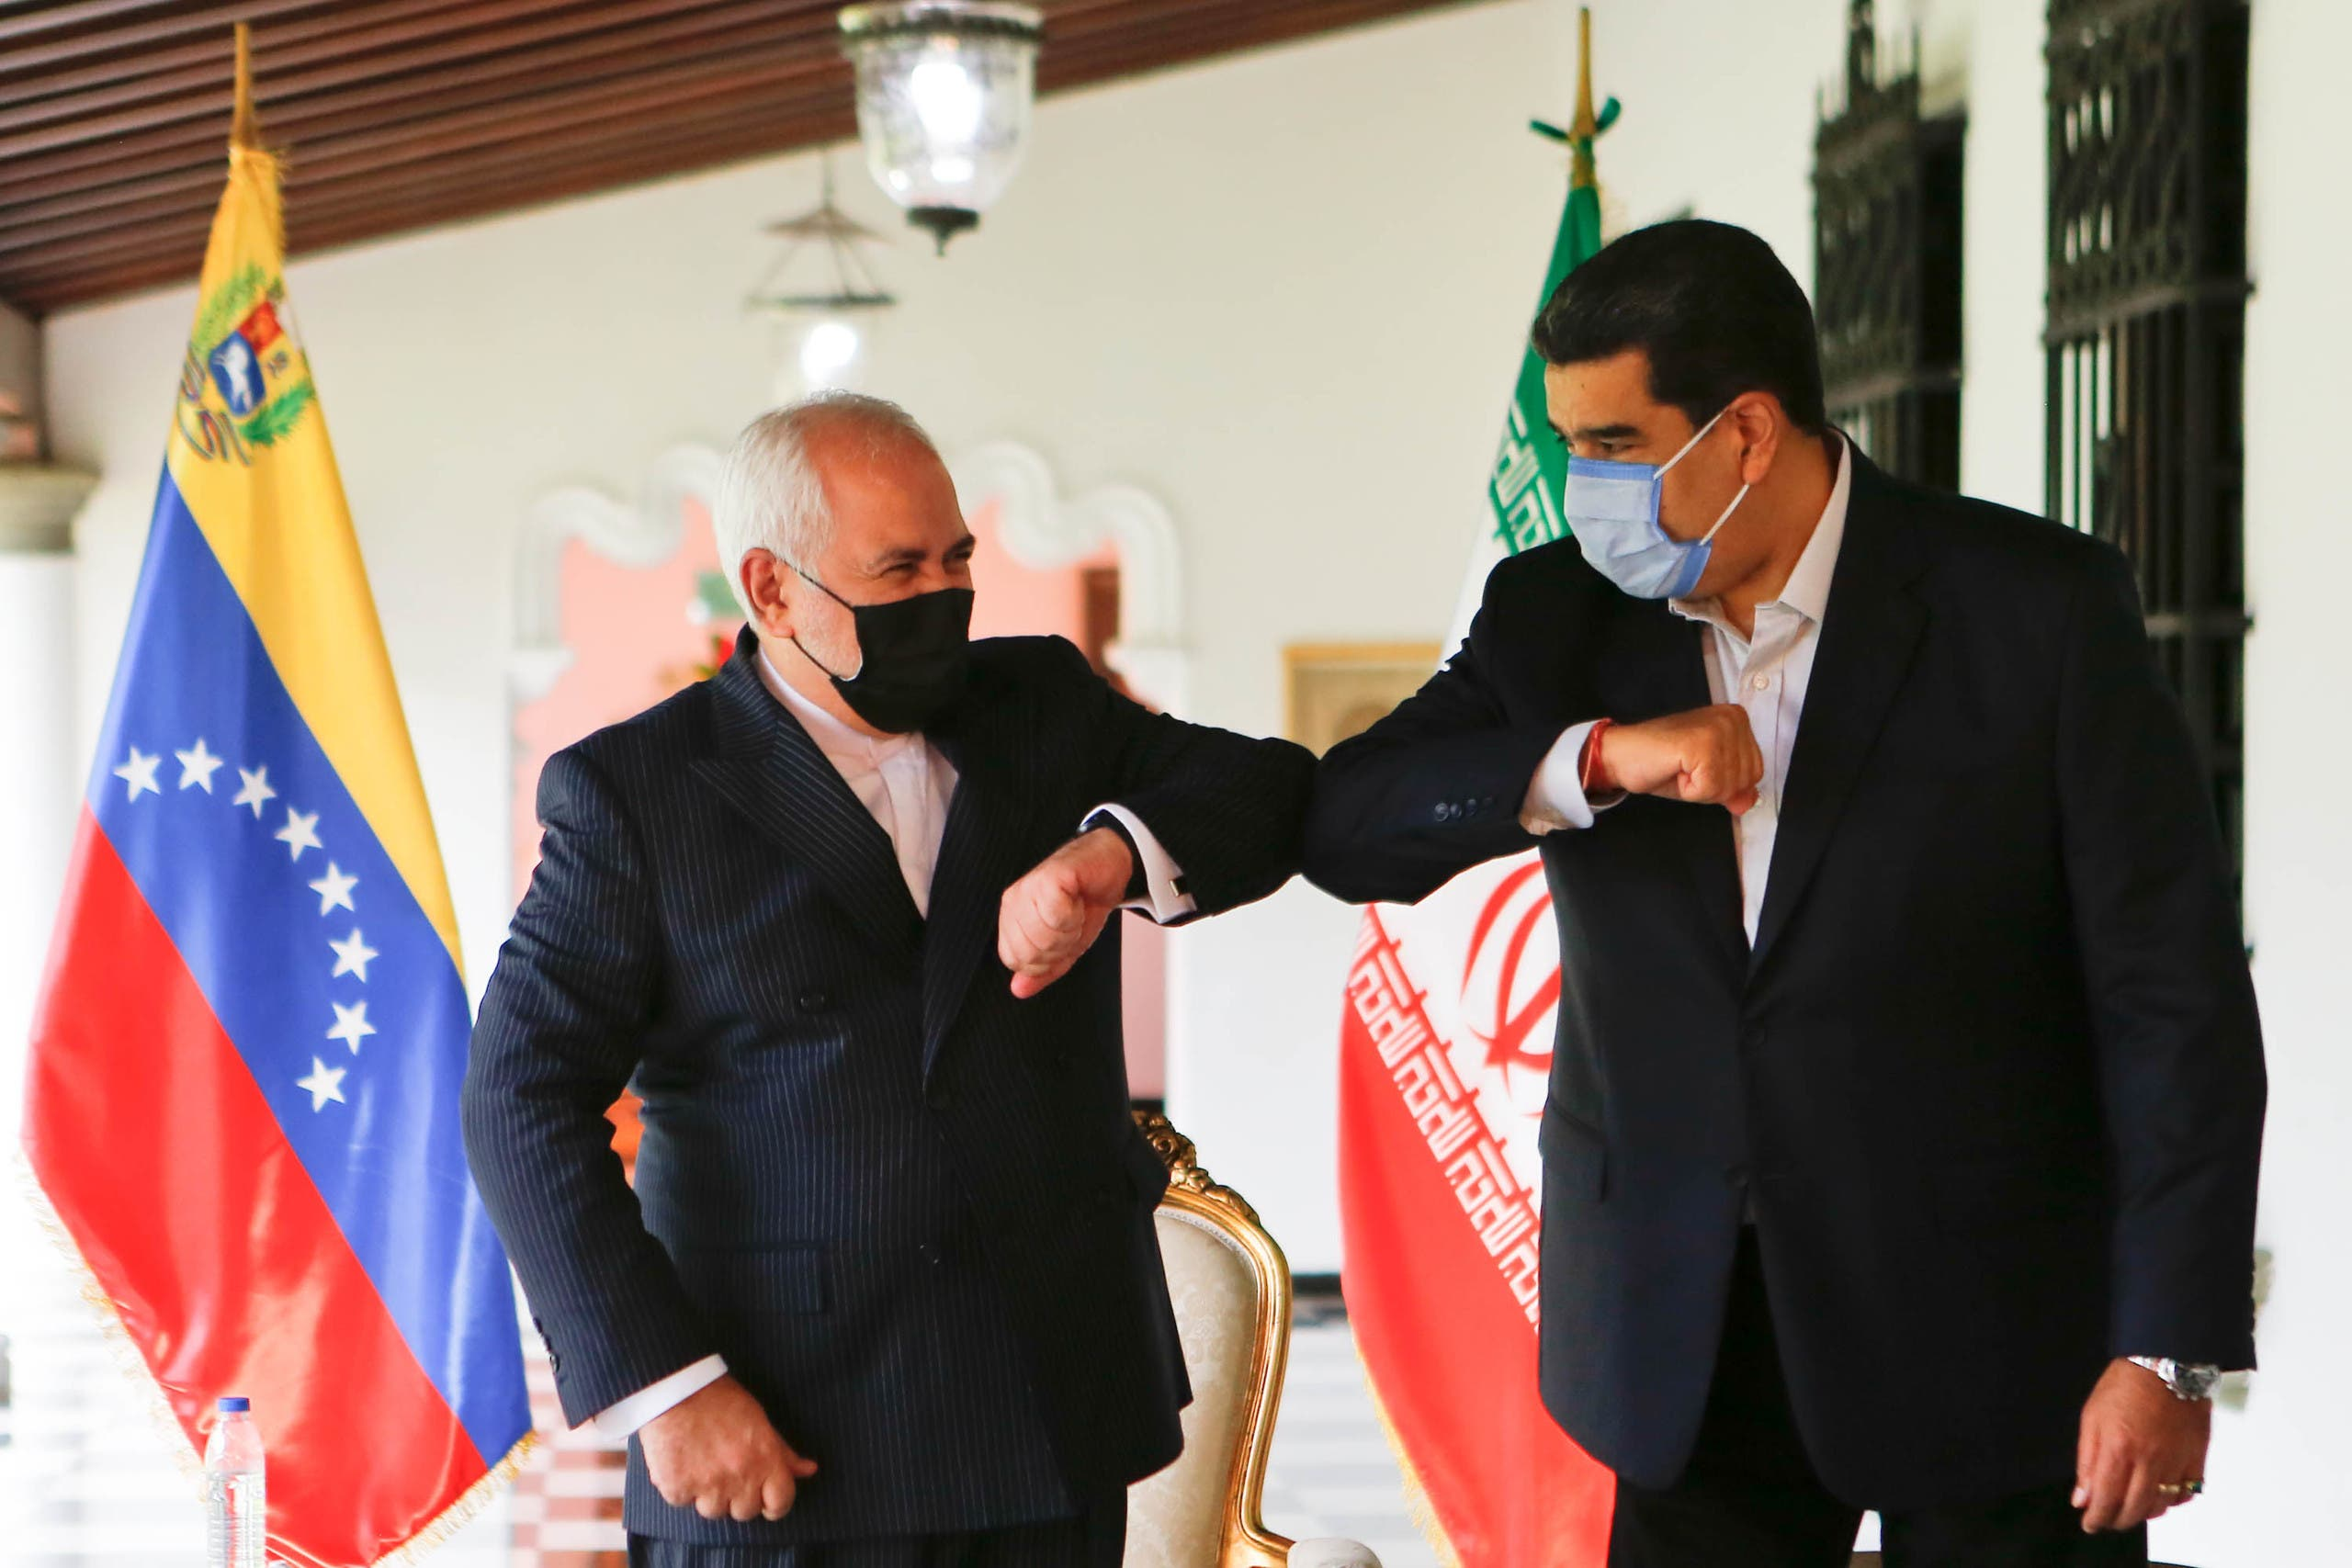 Venezuela's President Nicolas Maduro (R) bumping elbows with the Foreign Minister of the Islamic Republic of Iran, Javad Zarif (L) at Miraflores Palace in Caracas, on November 5, 2020. (File photo: AFP)